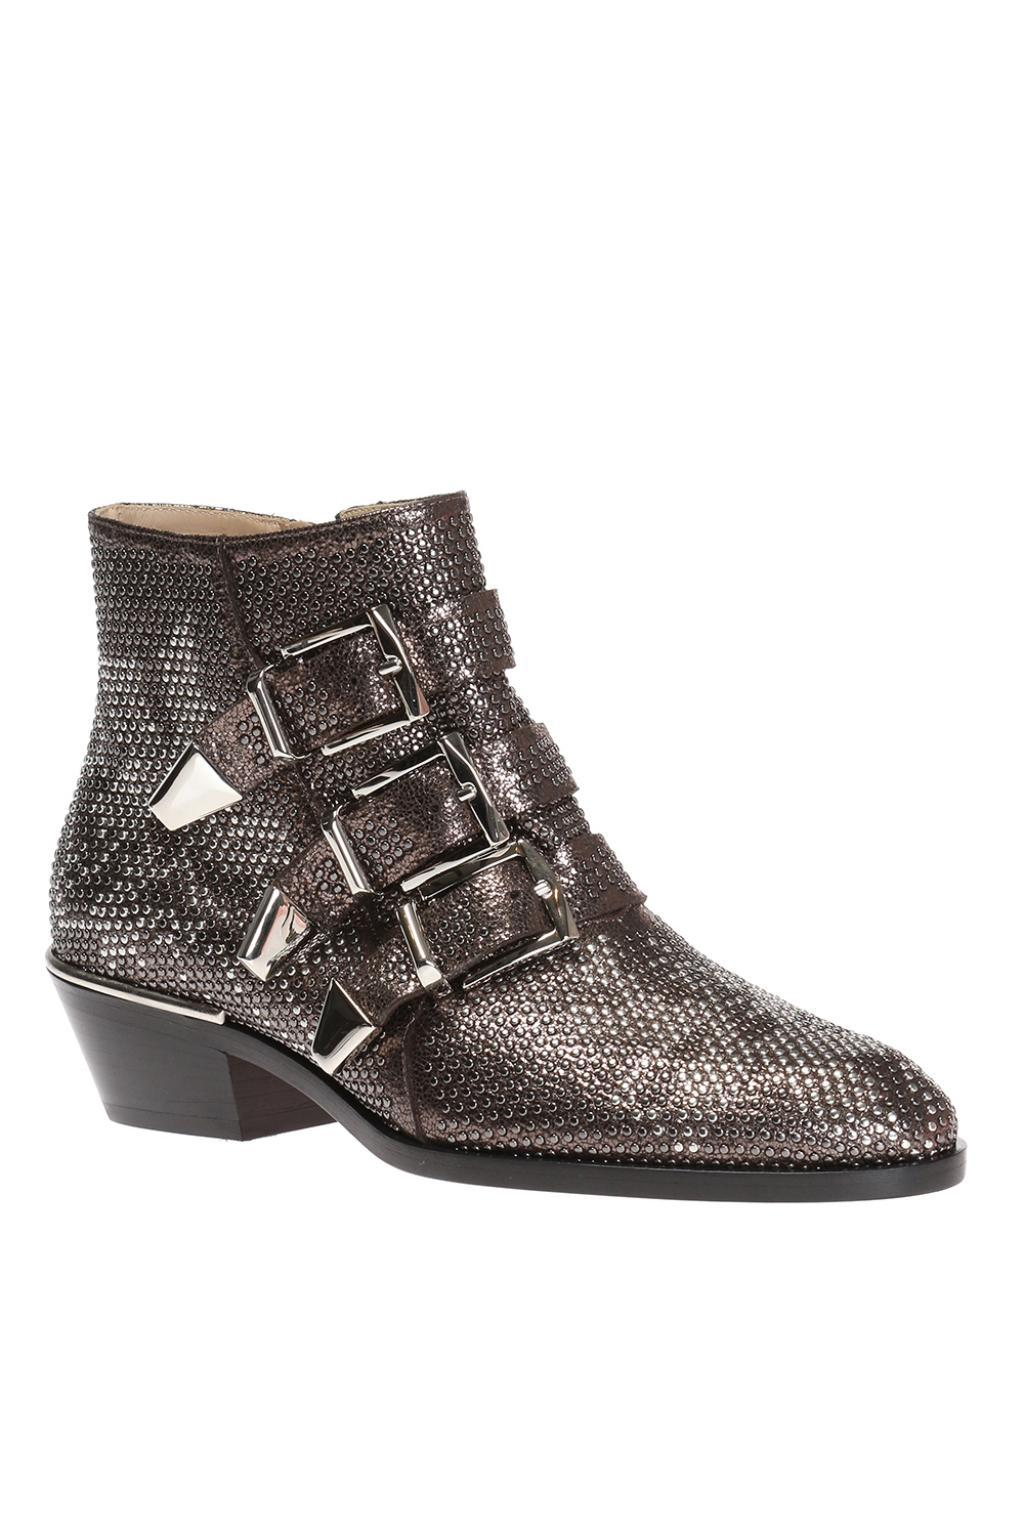 Chloé Leather 'susanna' Heeled Boots in Silver (Metallic)